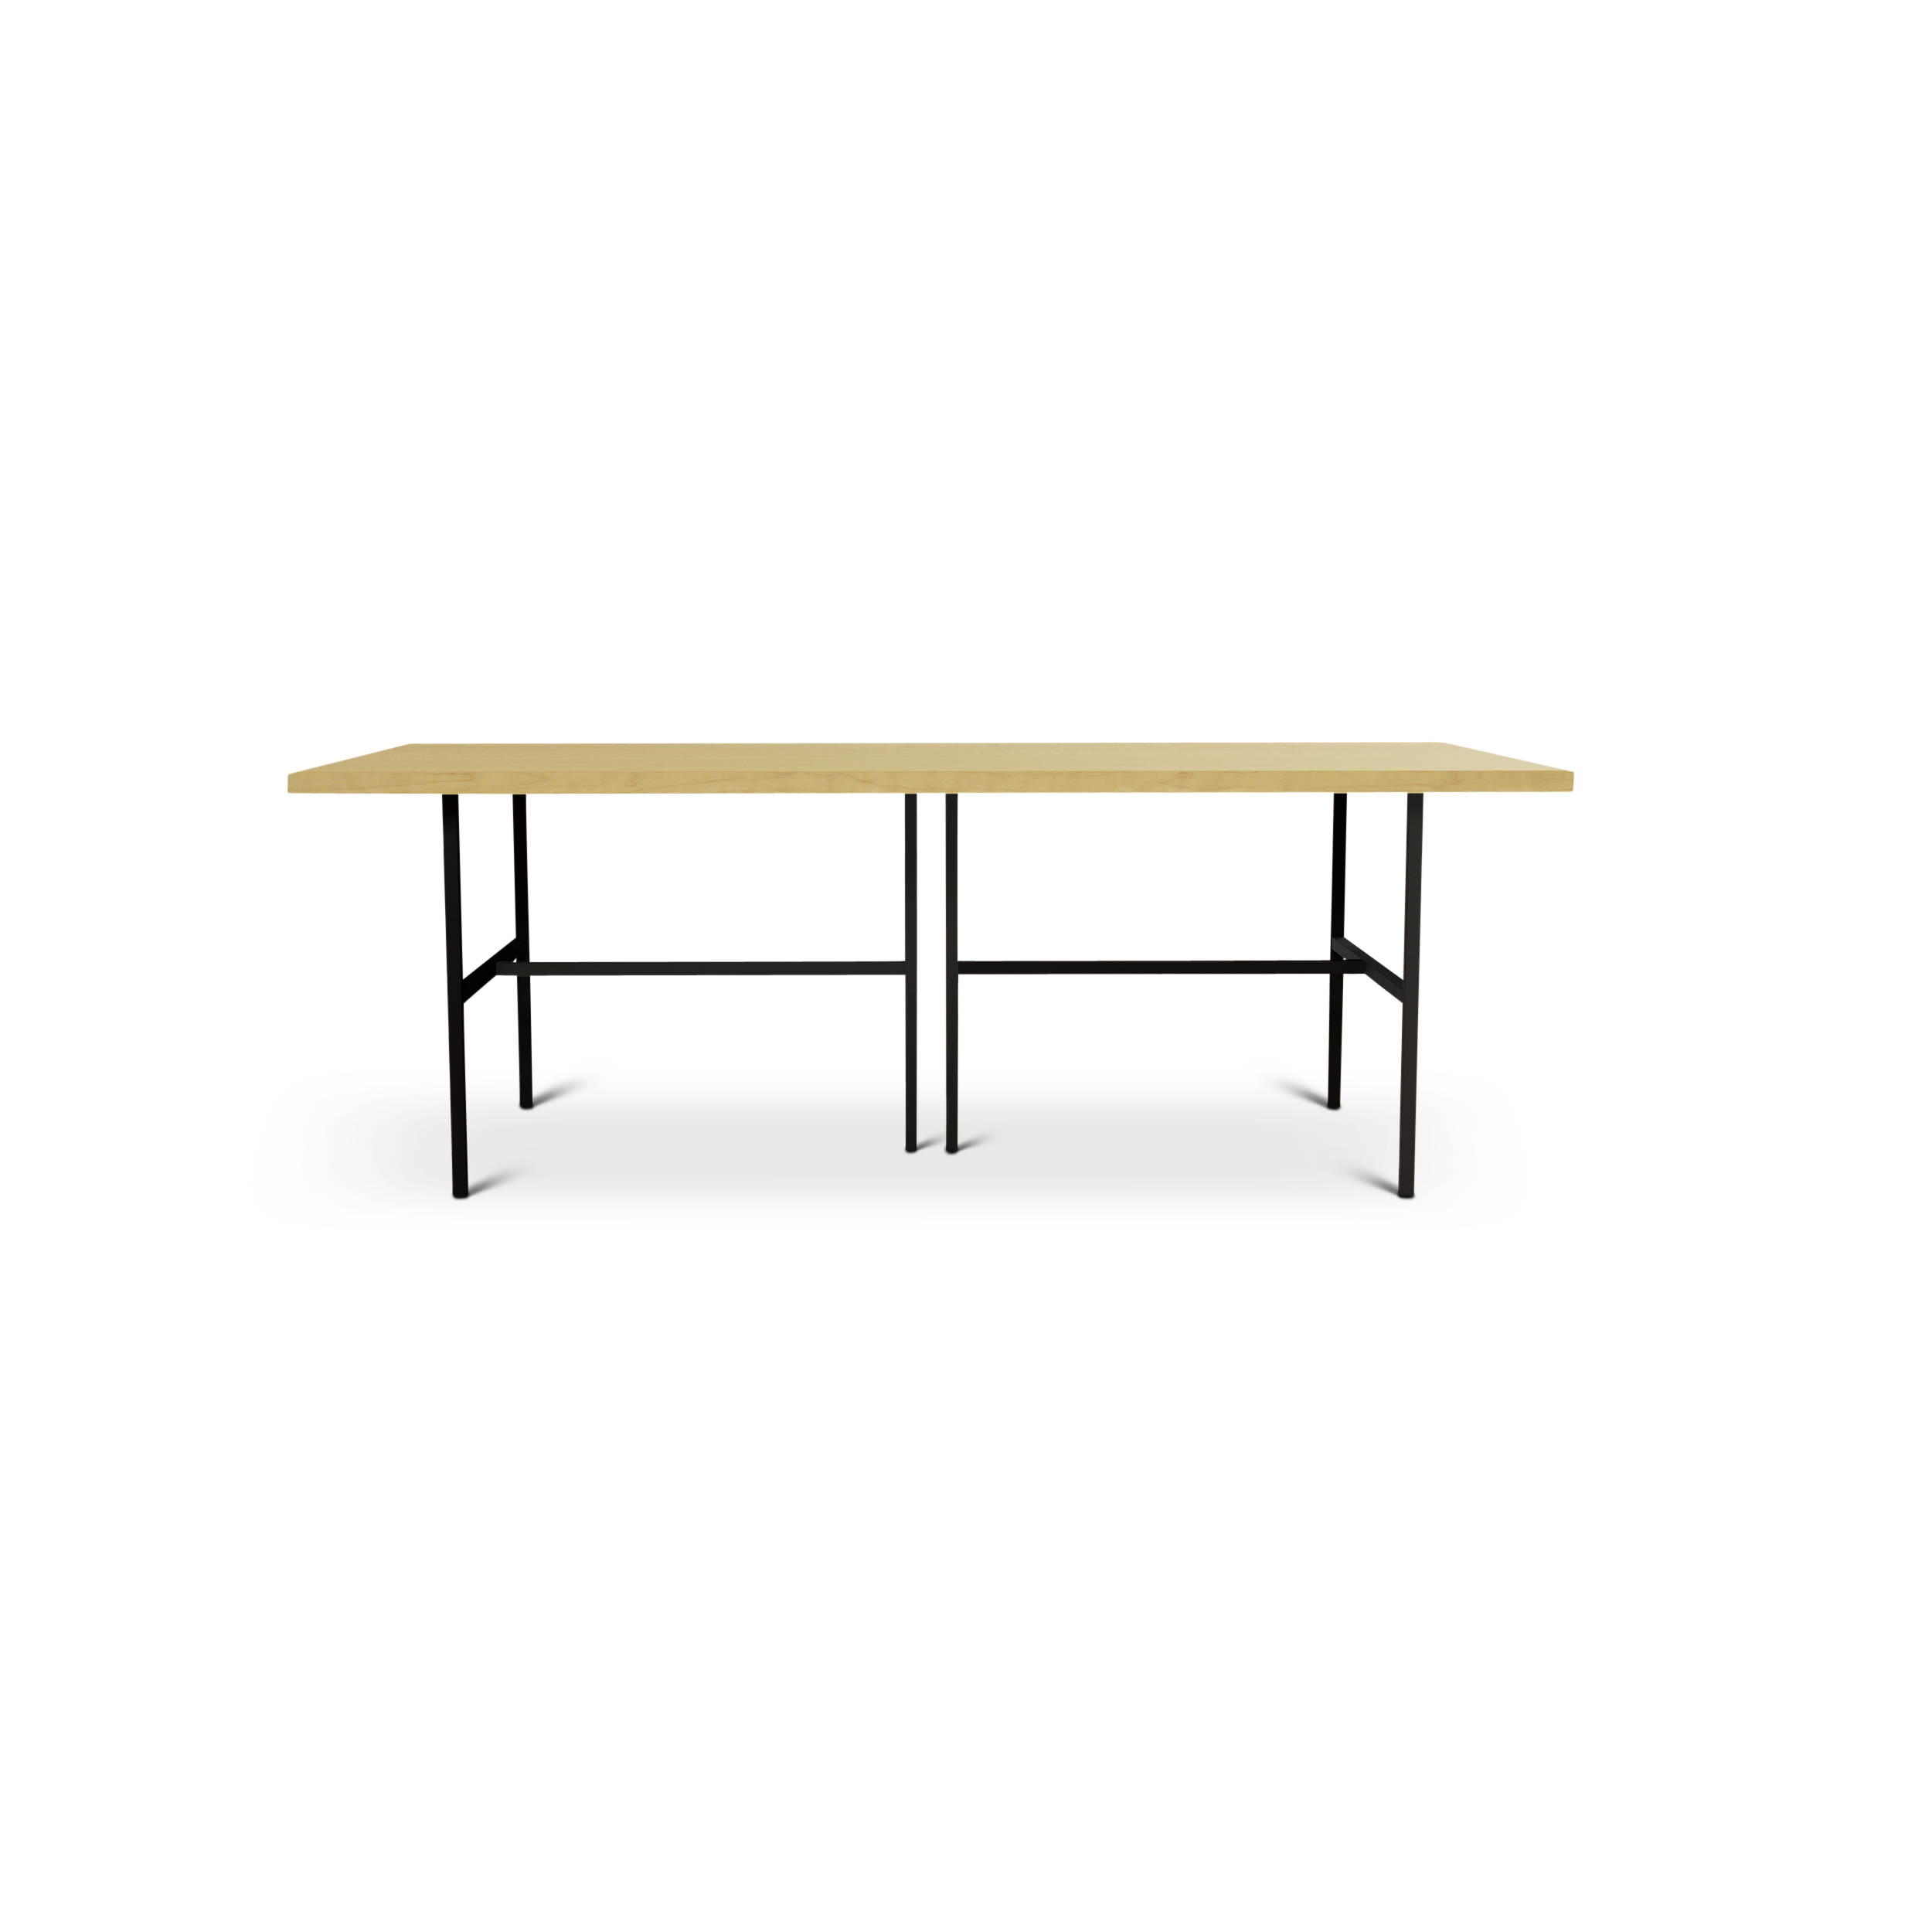 Series 828 84″ Table